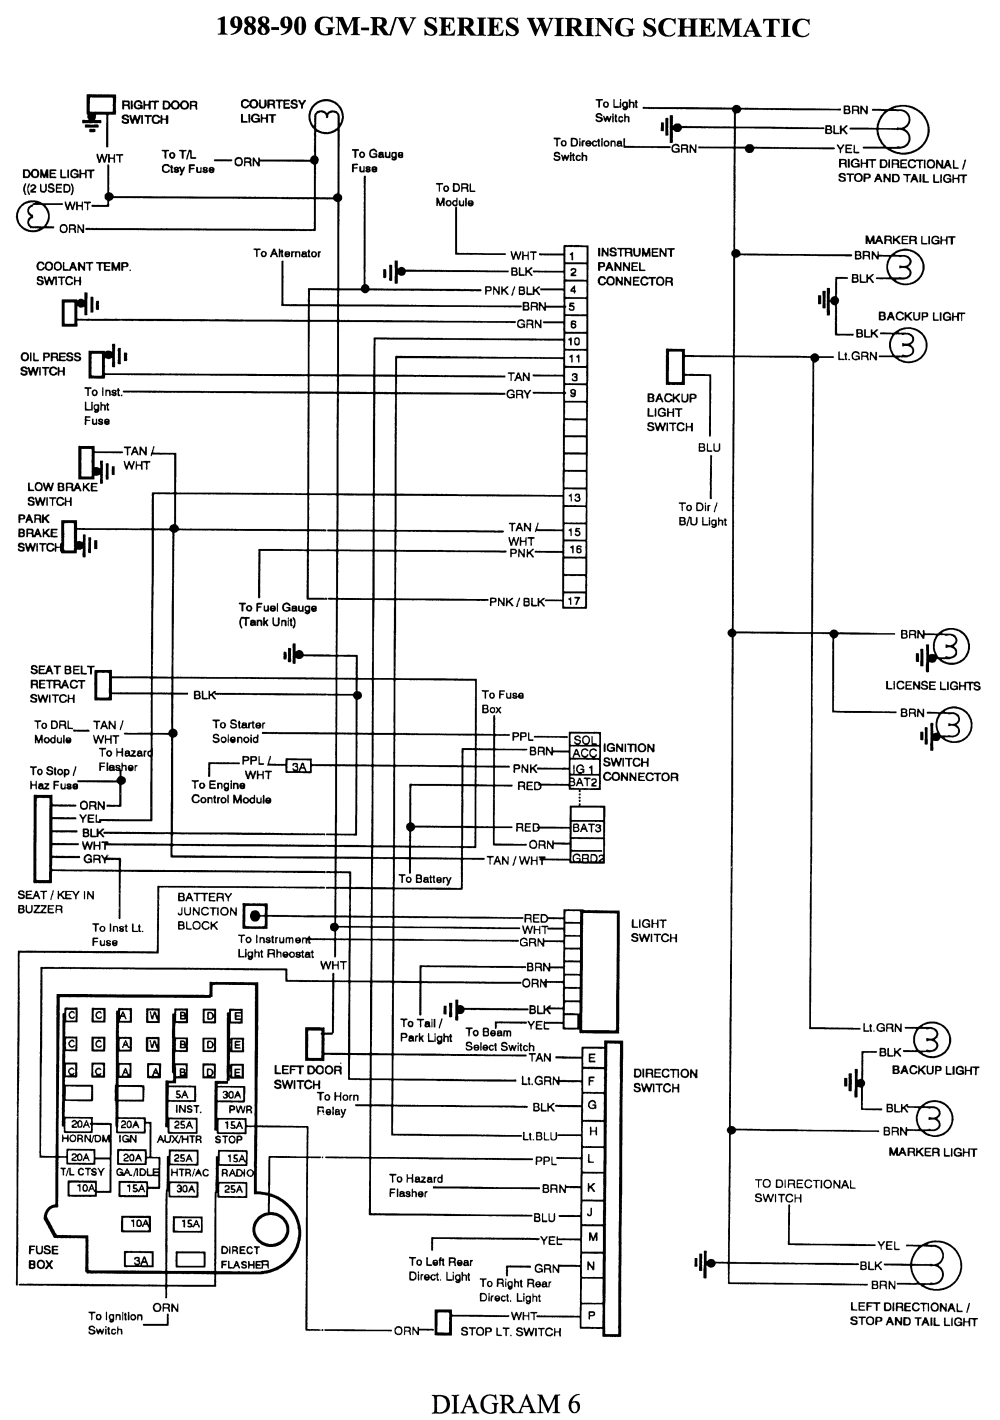 1990 Chevy Silverado Radio Wiring Diagram